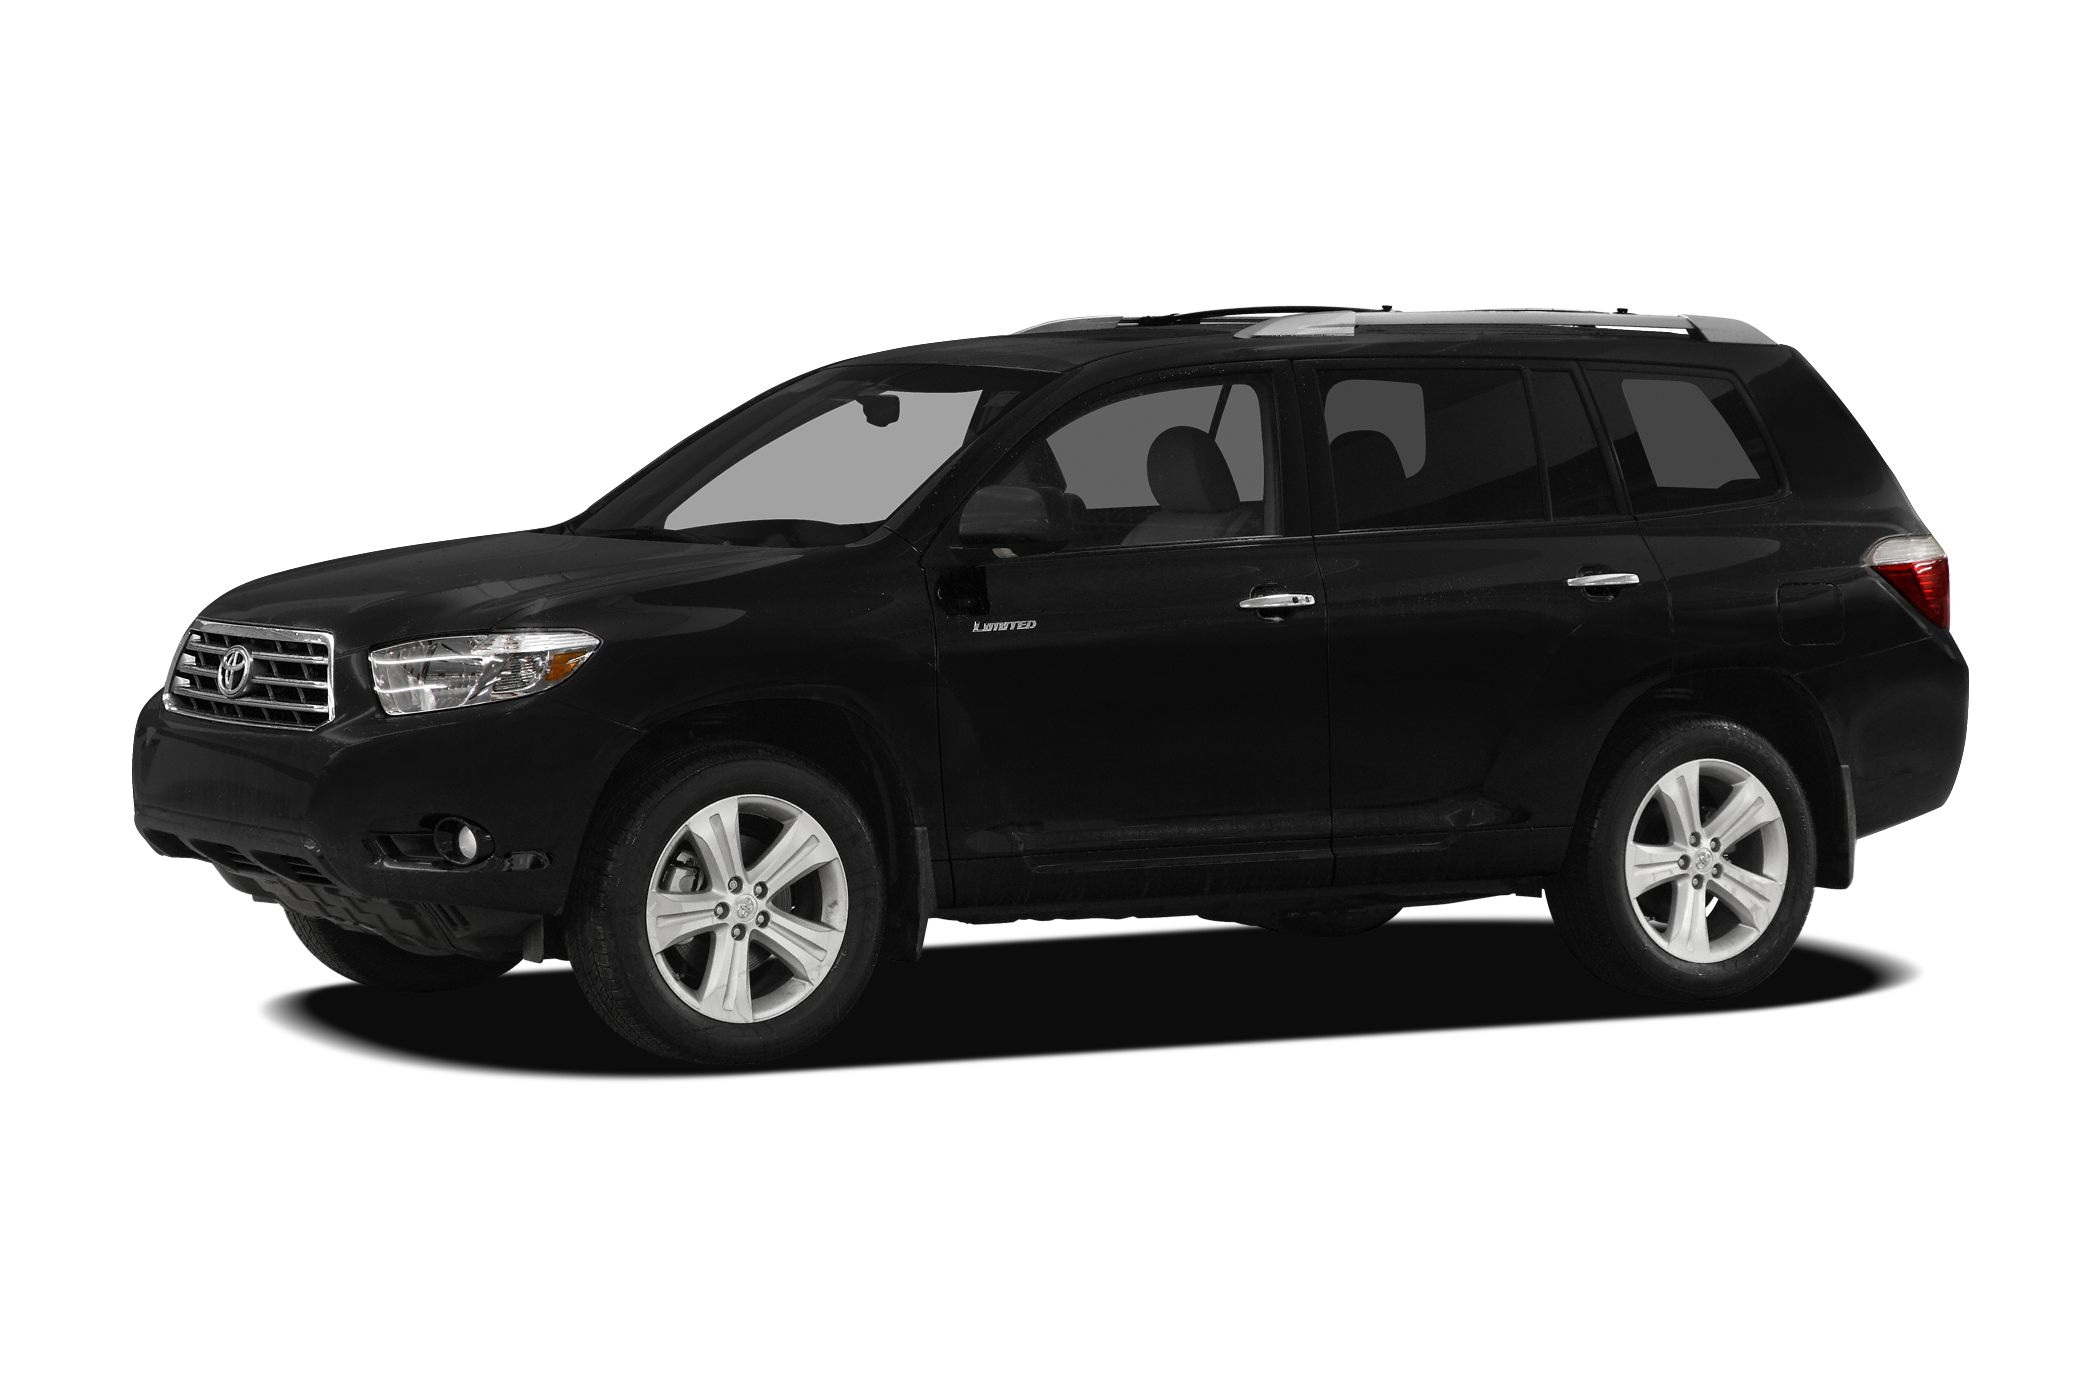 2009 Toyota Highlander Pricing And Specs